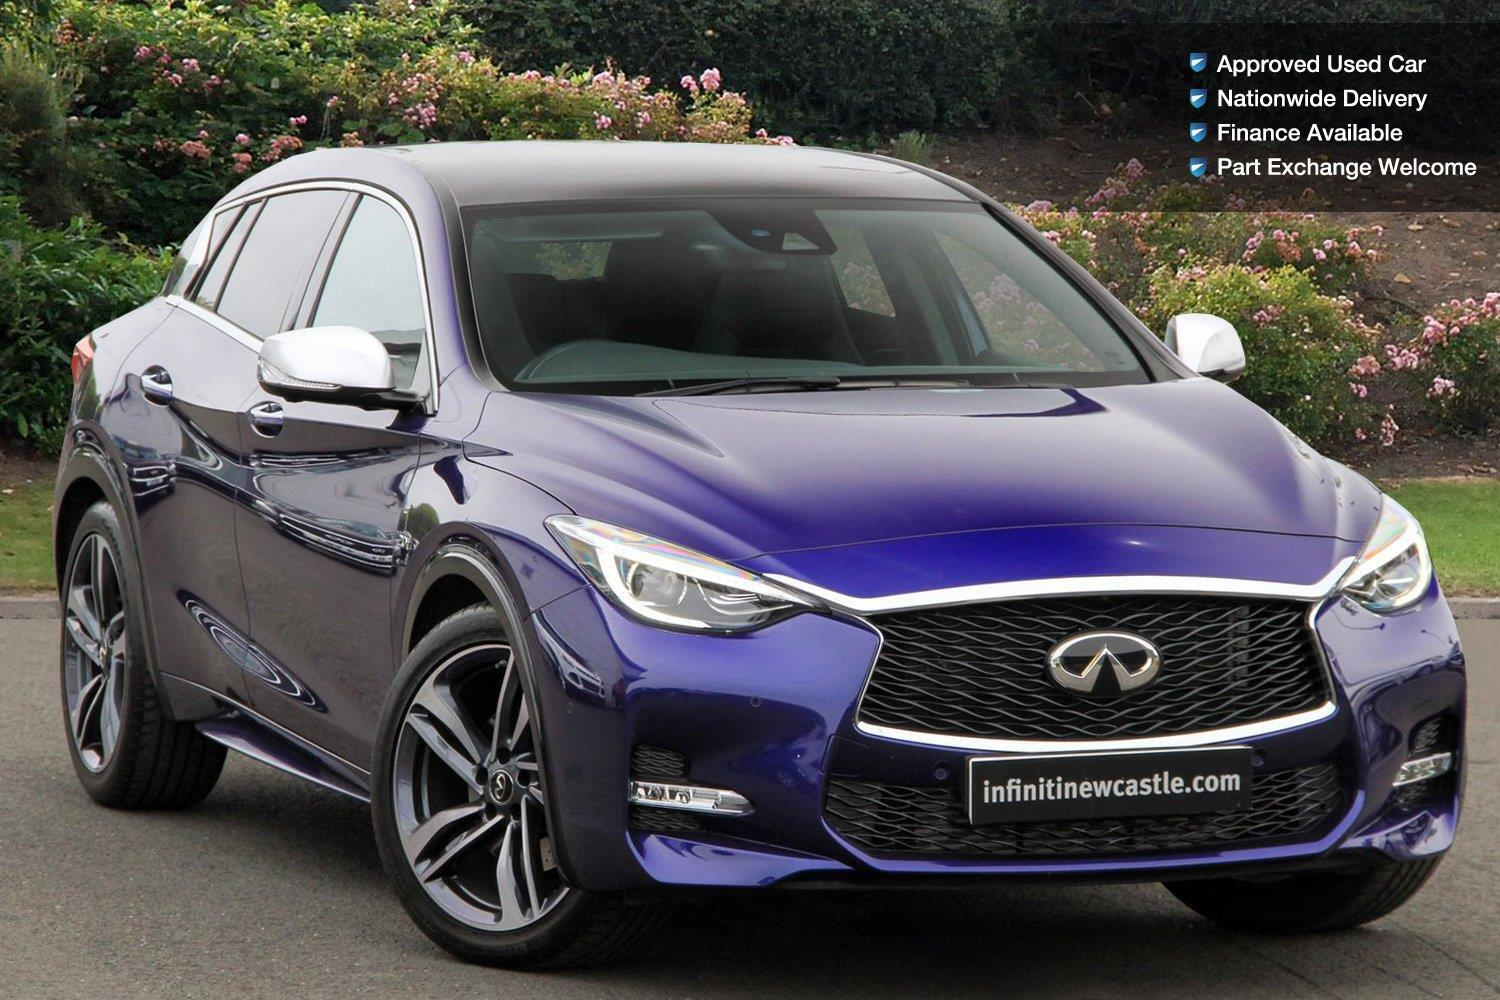 used infiniti q30 2 0t sport 5dr dct petrol hatchback for sale newcastle infiniti. Black Bedroom Furniture Sets. Home Design Ideas